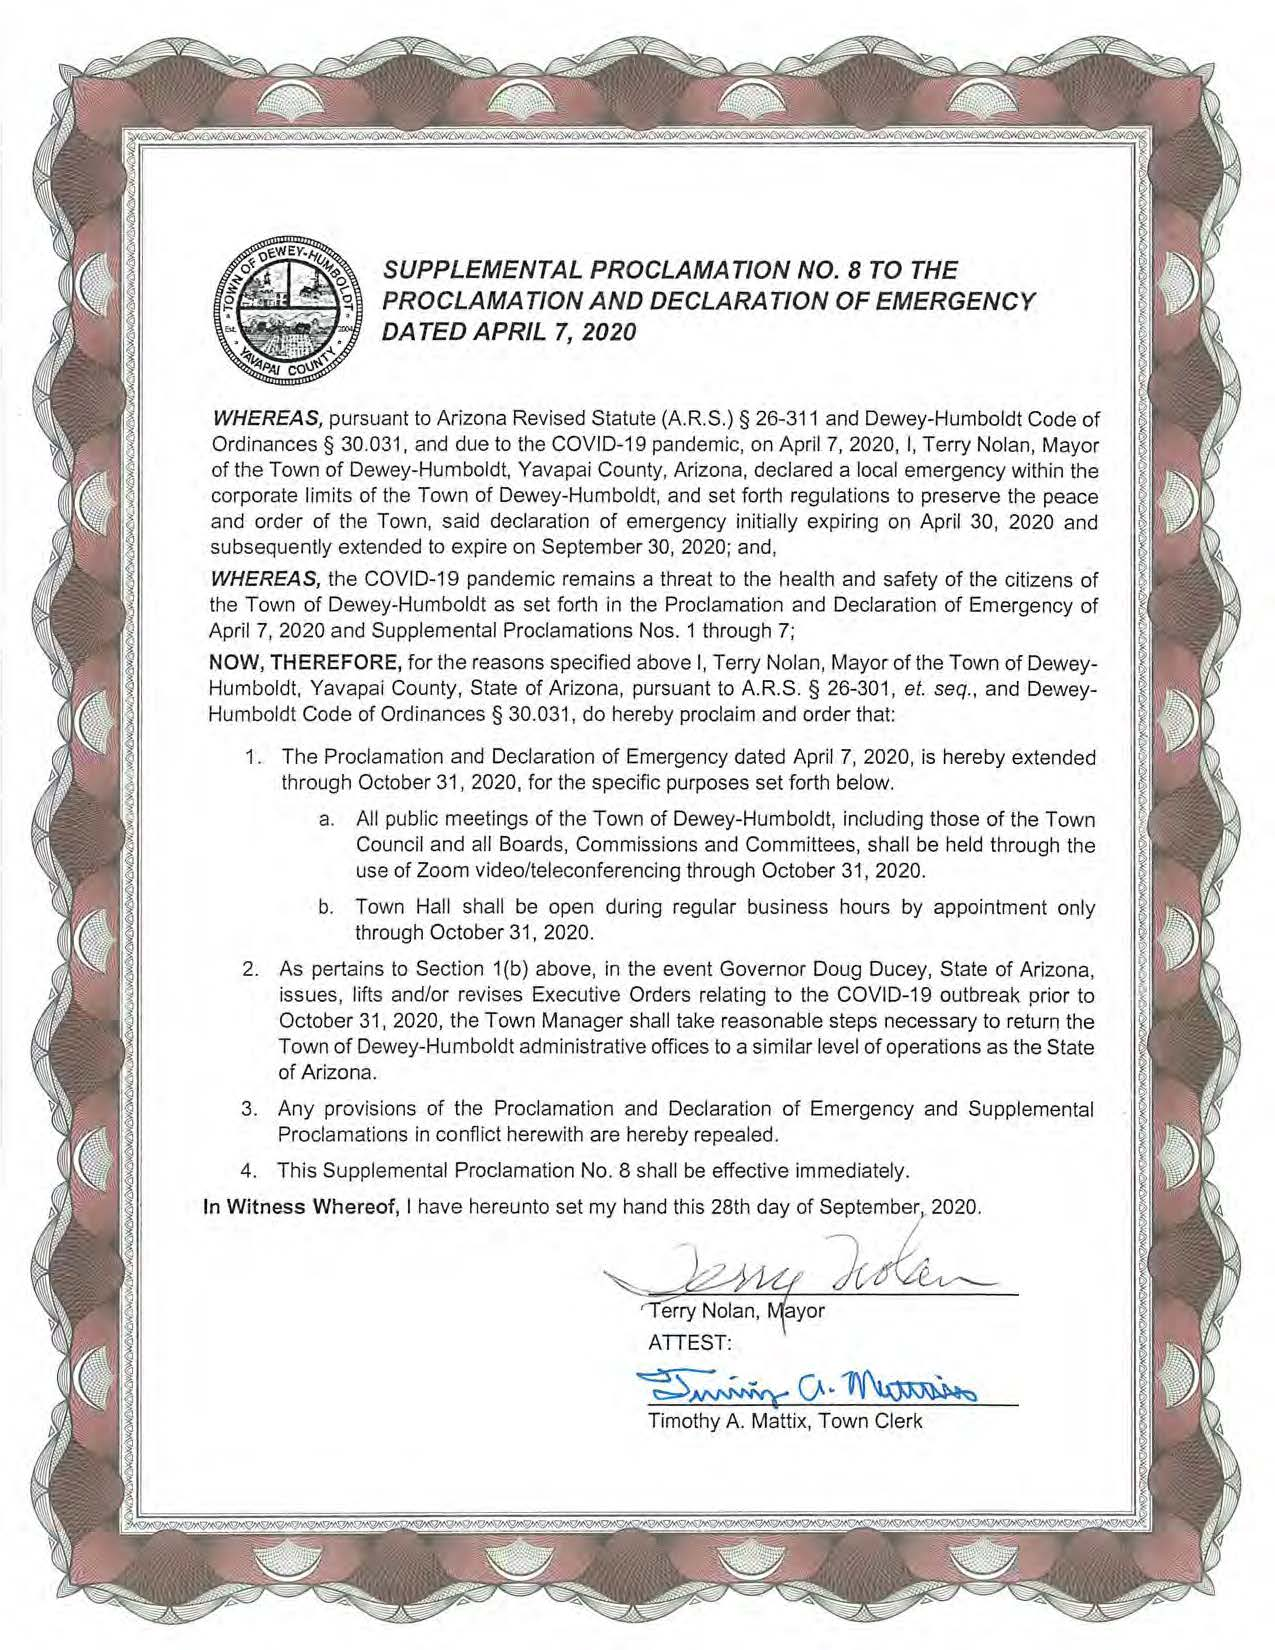 Supplemental Proclamation 8